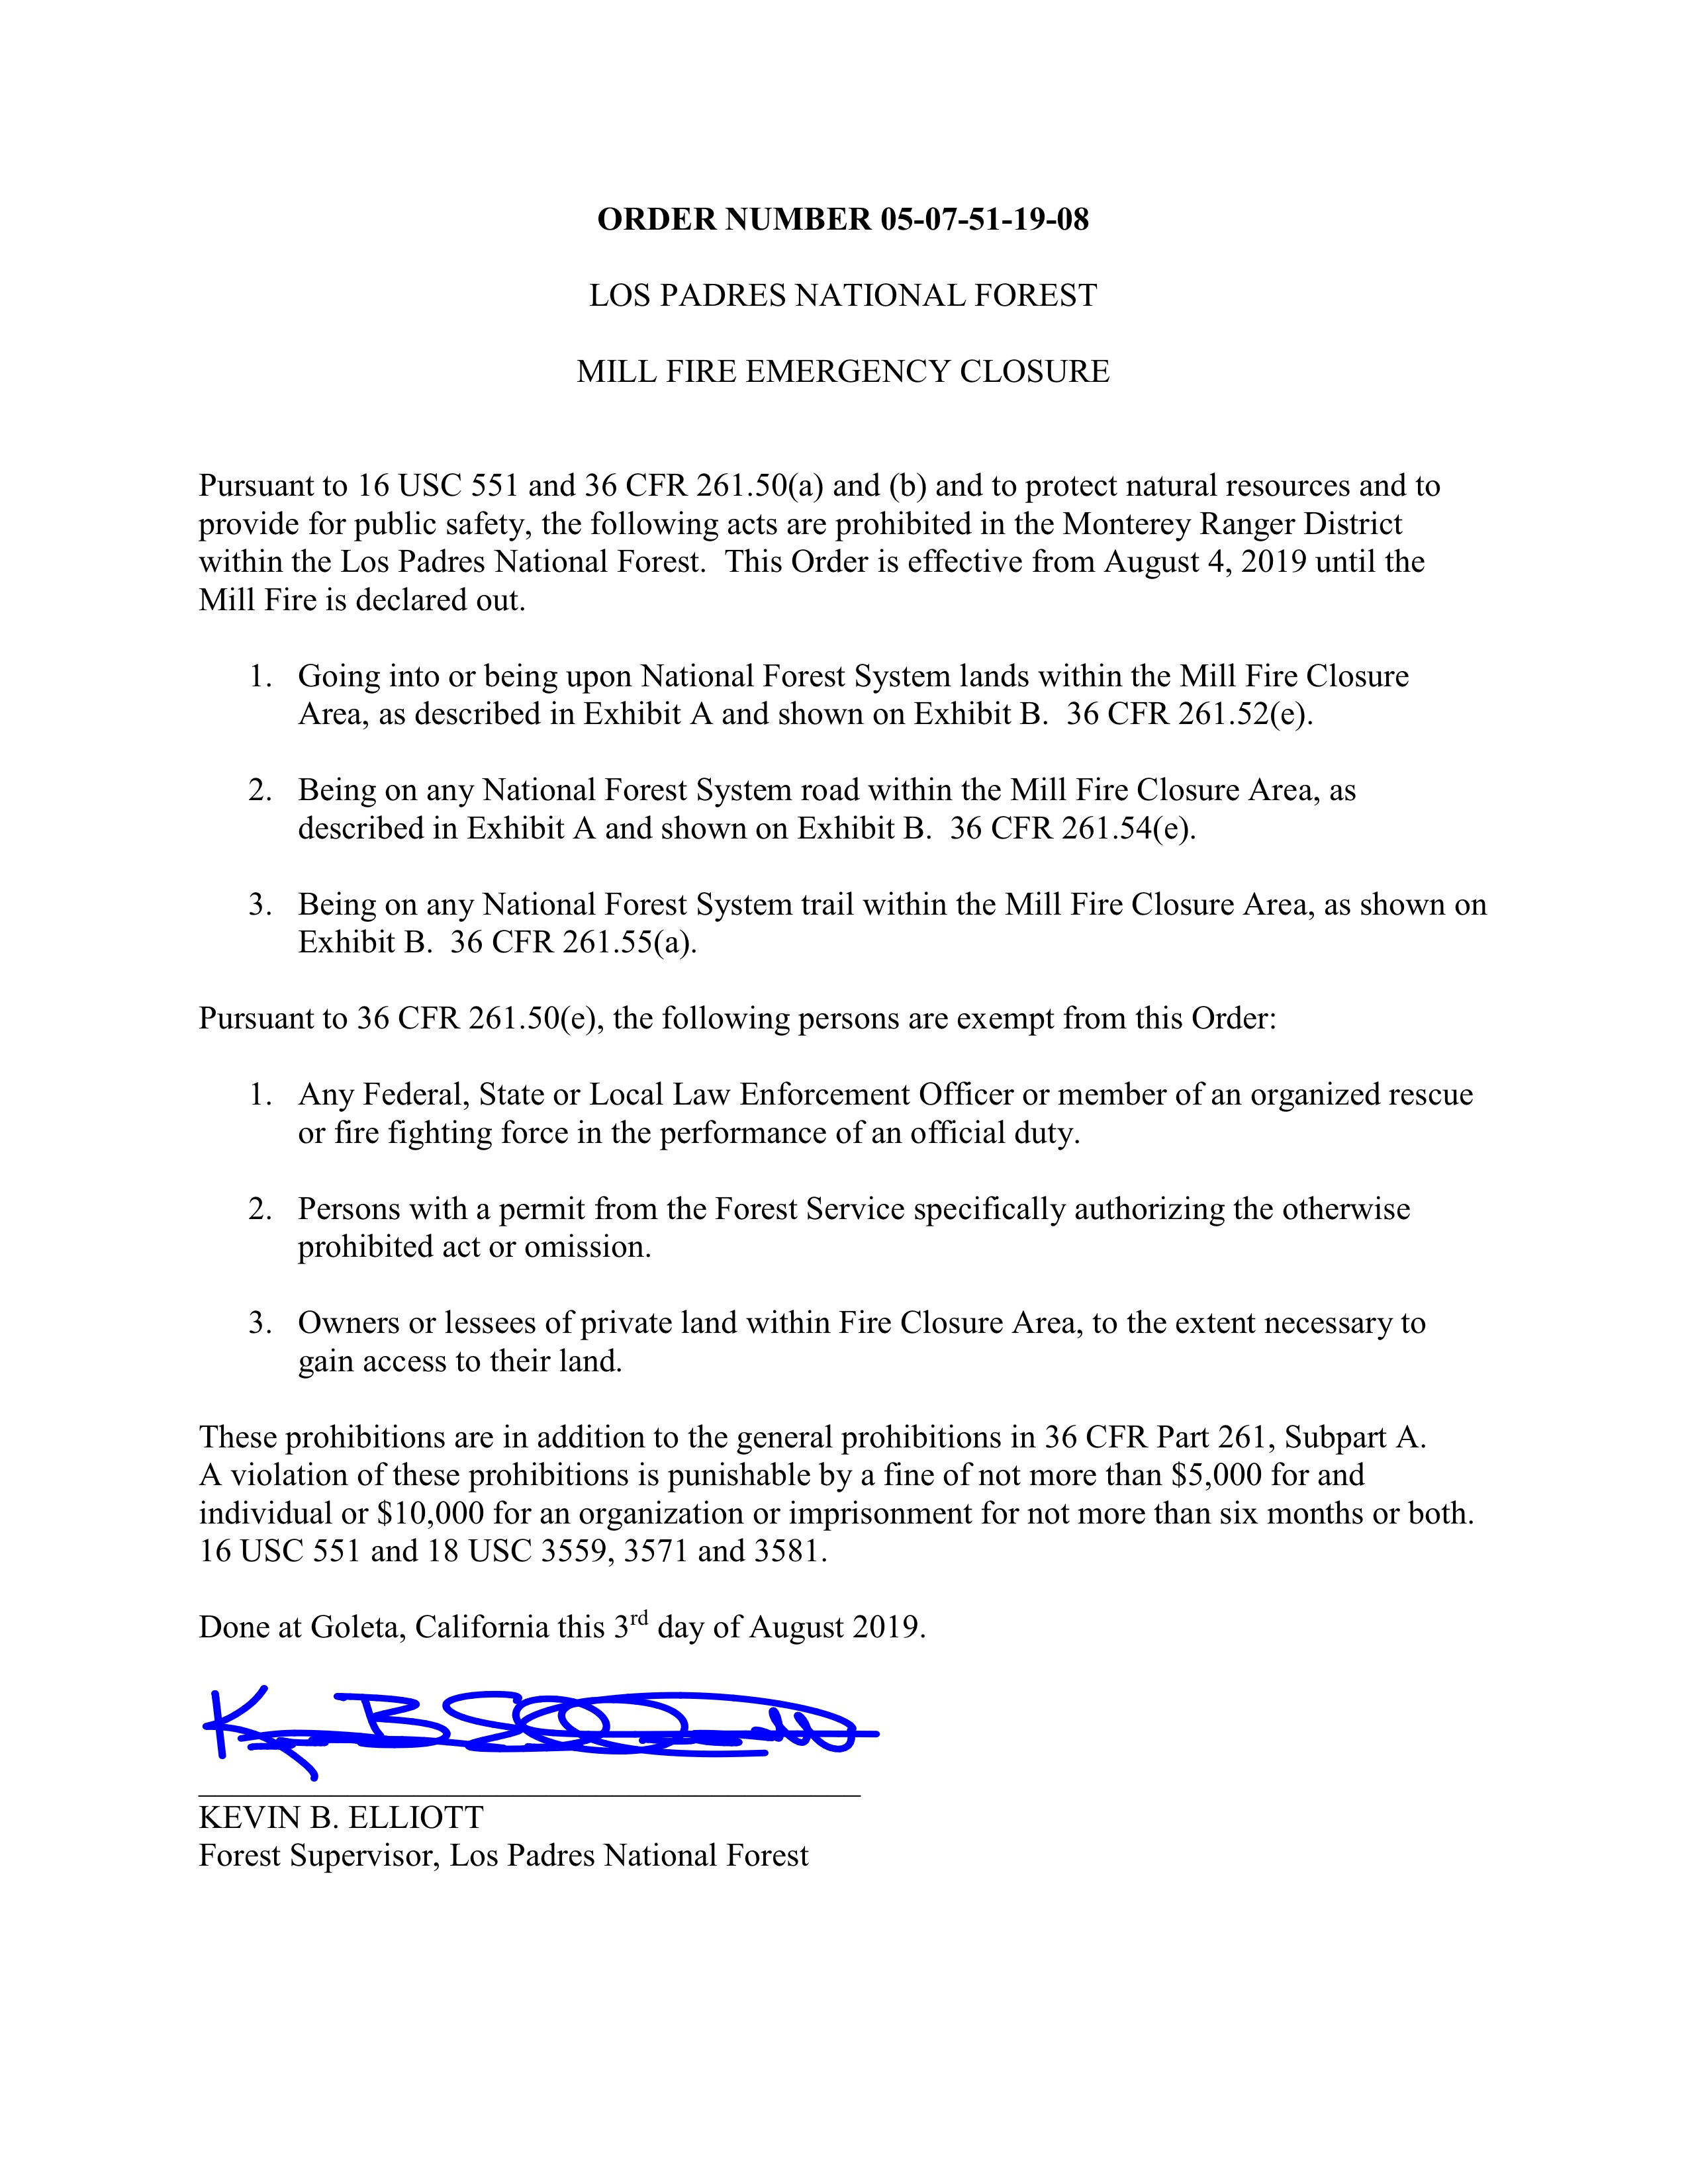 Partial Forest Closure order effective 8/4/19 and Map